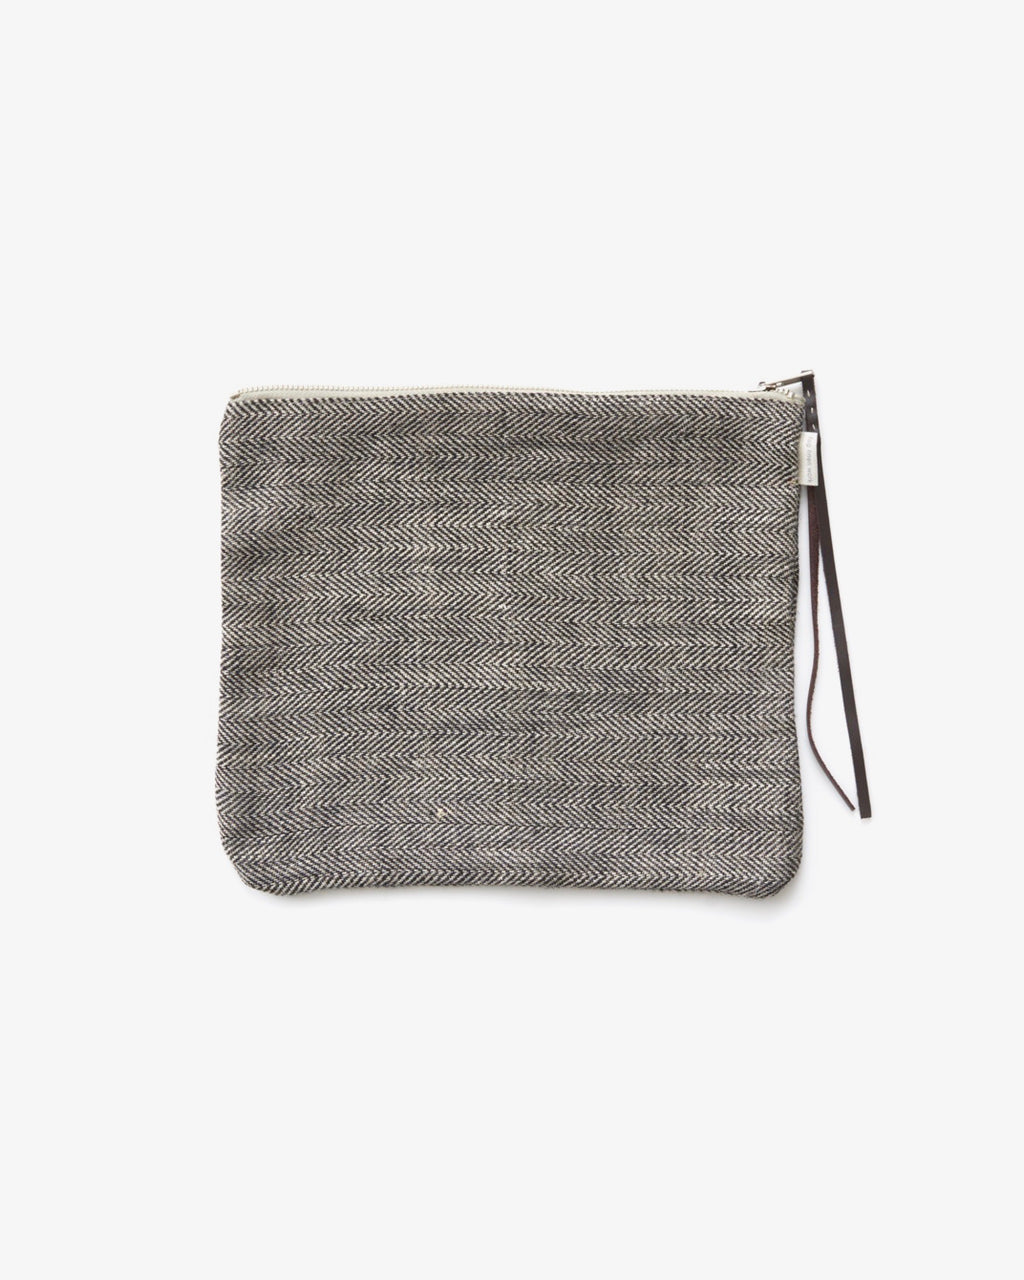 Canna Pouch: Chocolate Herringbone